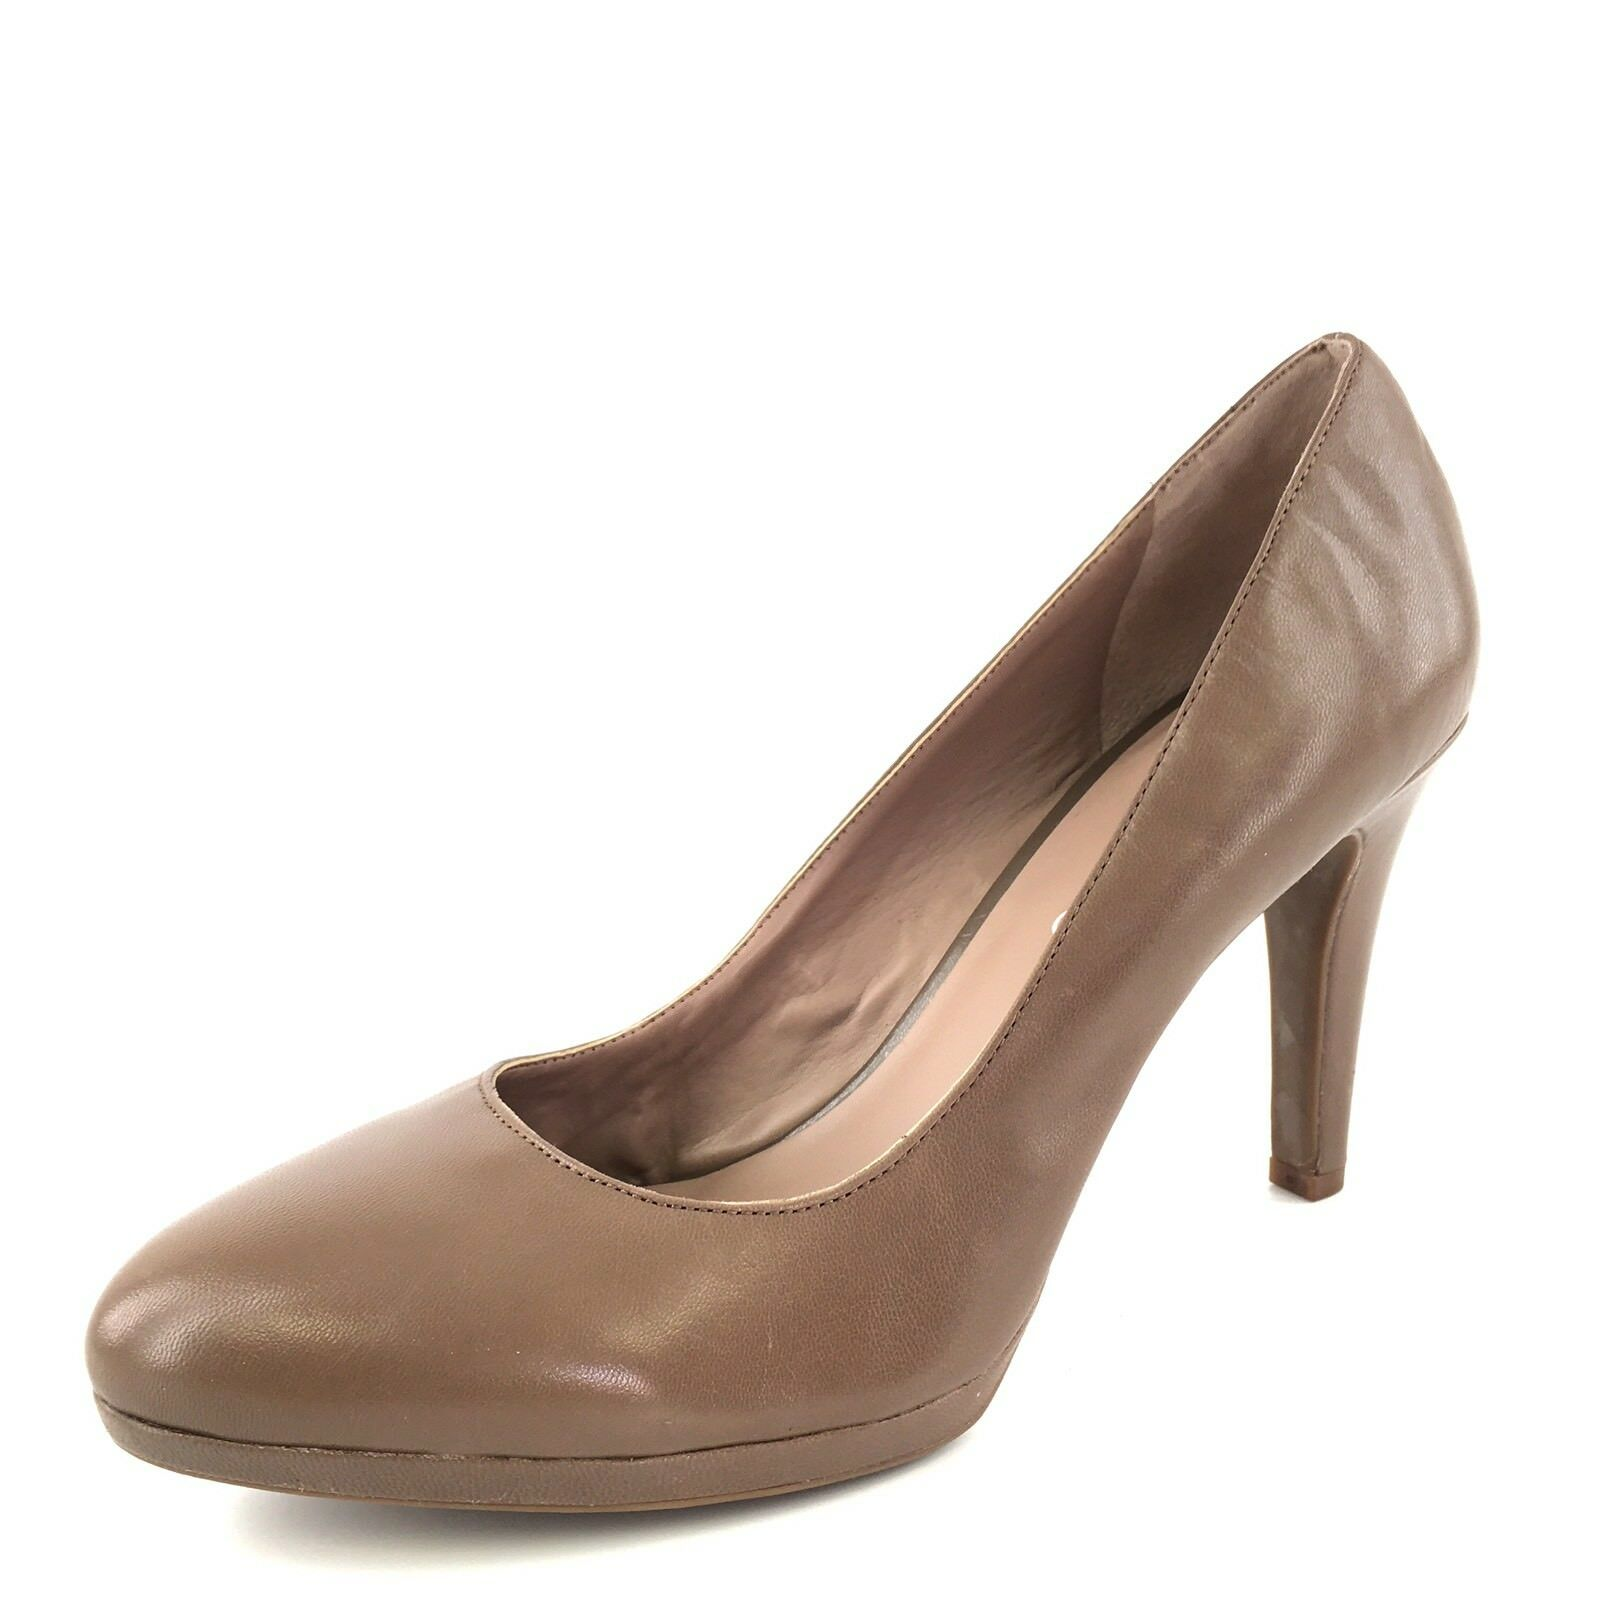 New Franco Sarto Darren Brown Leather Almond Toe Pumps Heels Women's Size 9 M